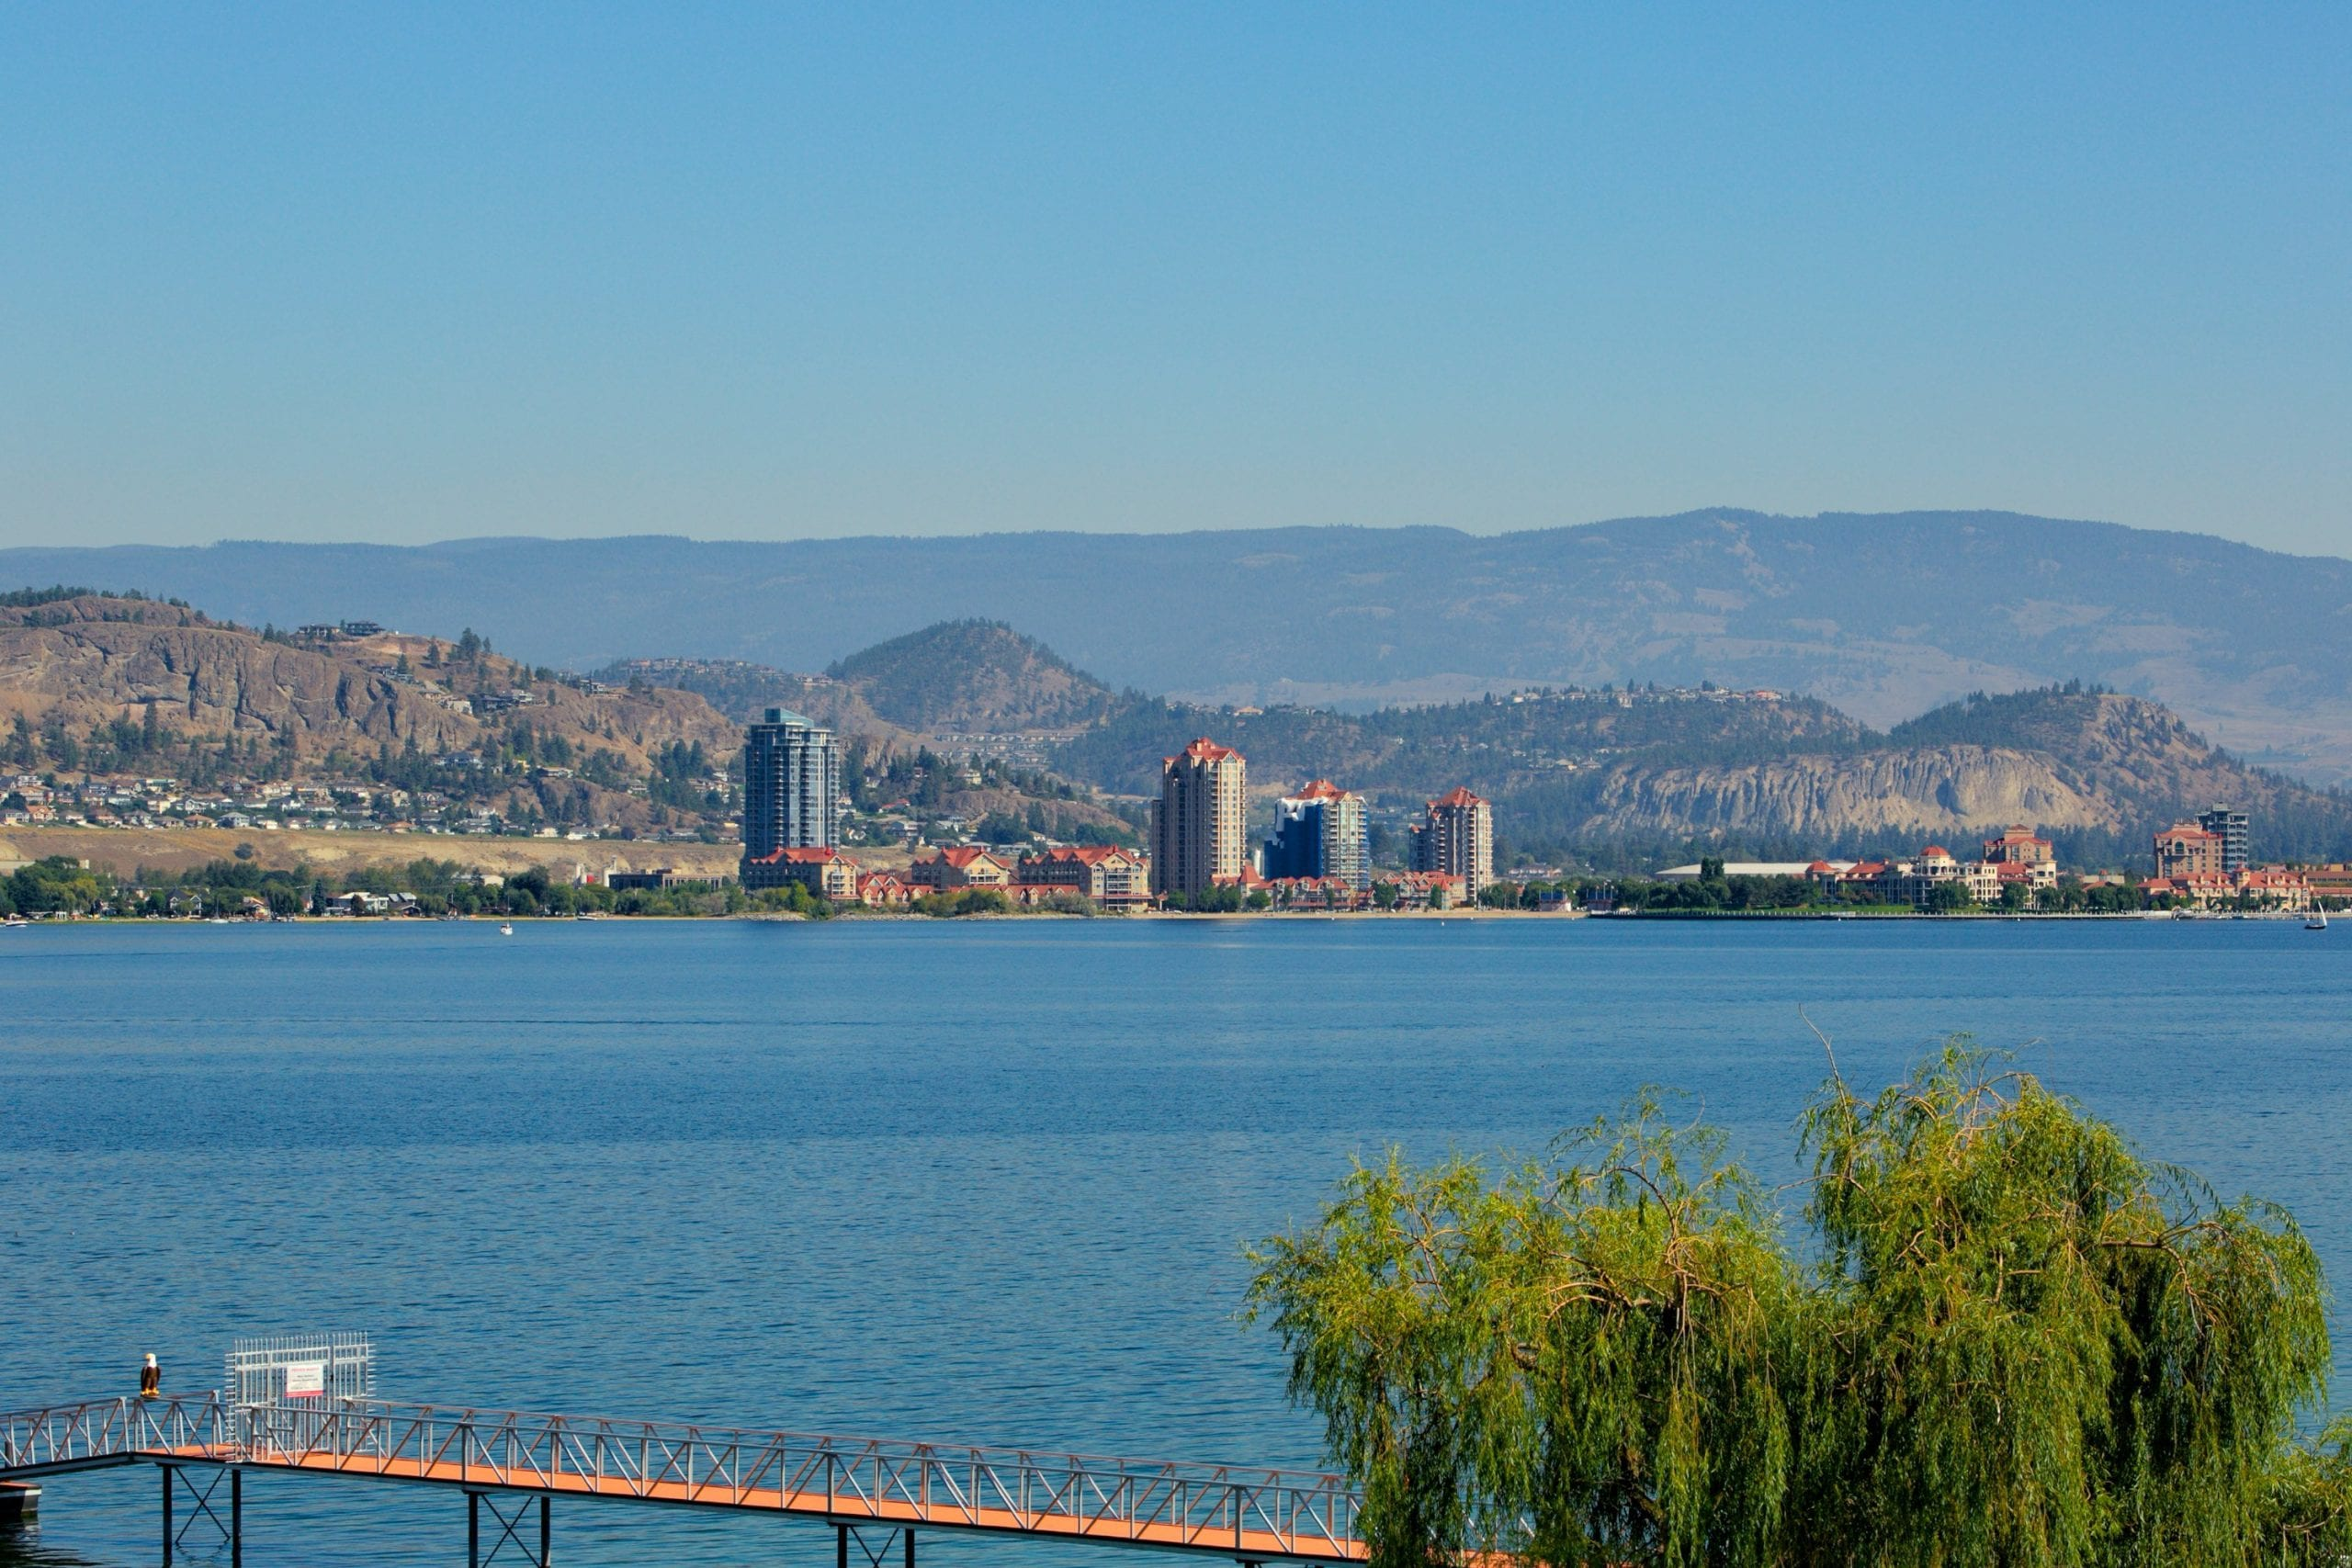 overlooking okanagan lake fixated on kelowna buildings in the distance